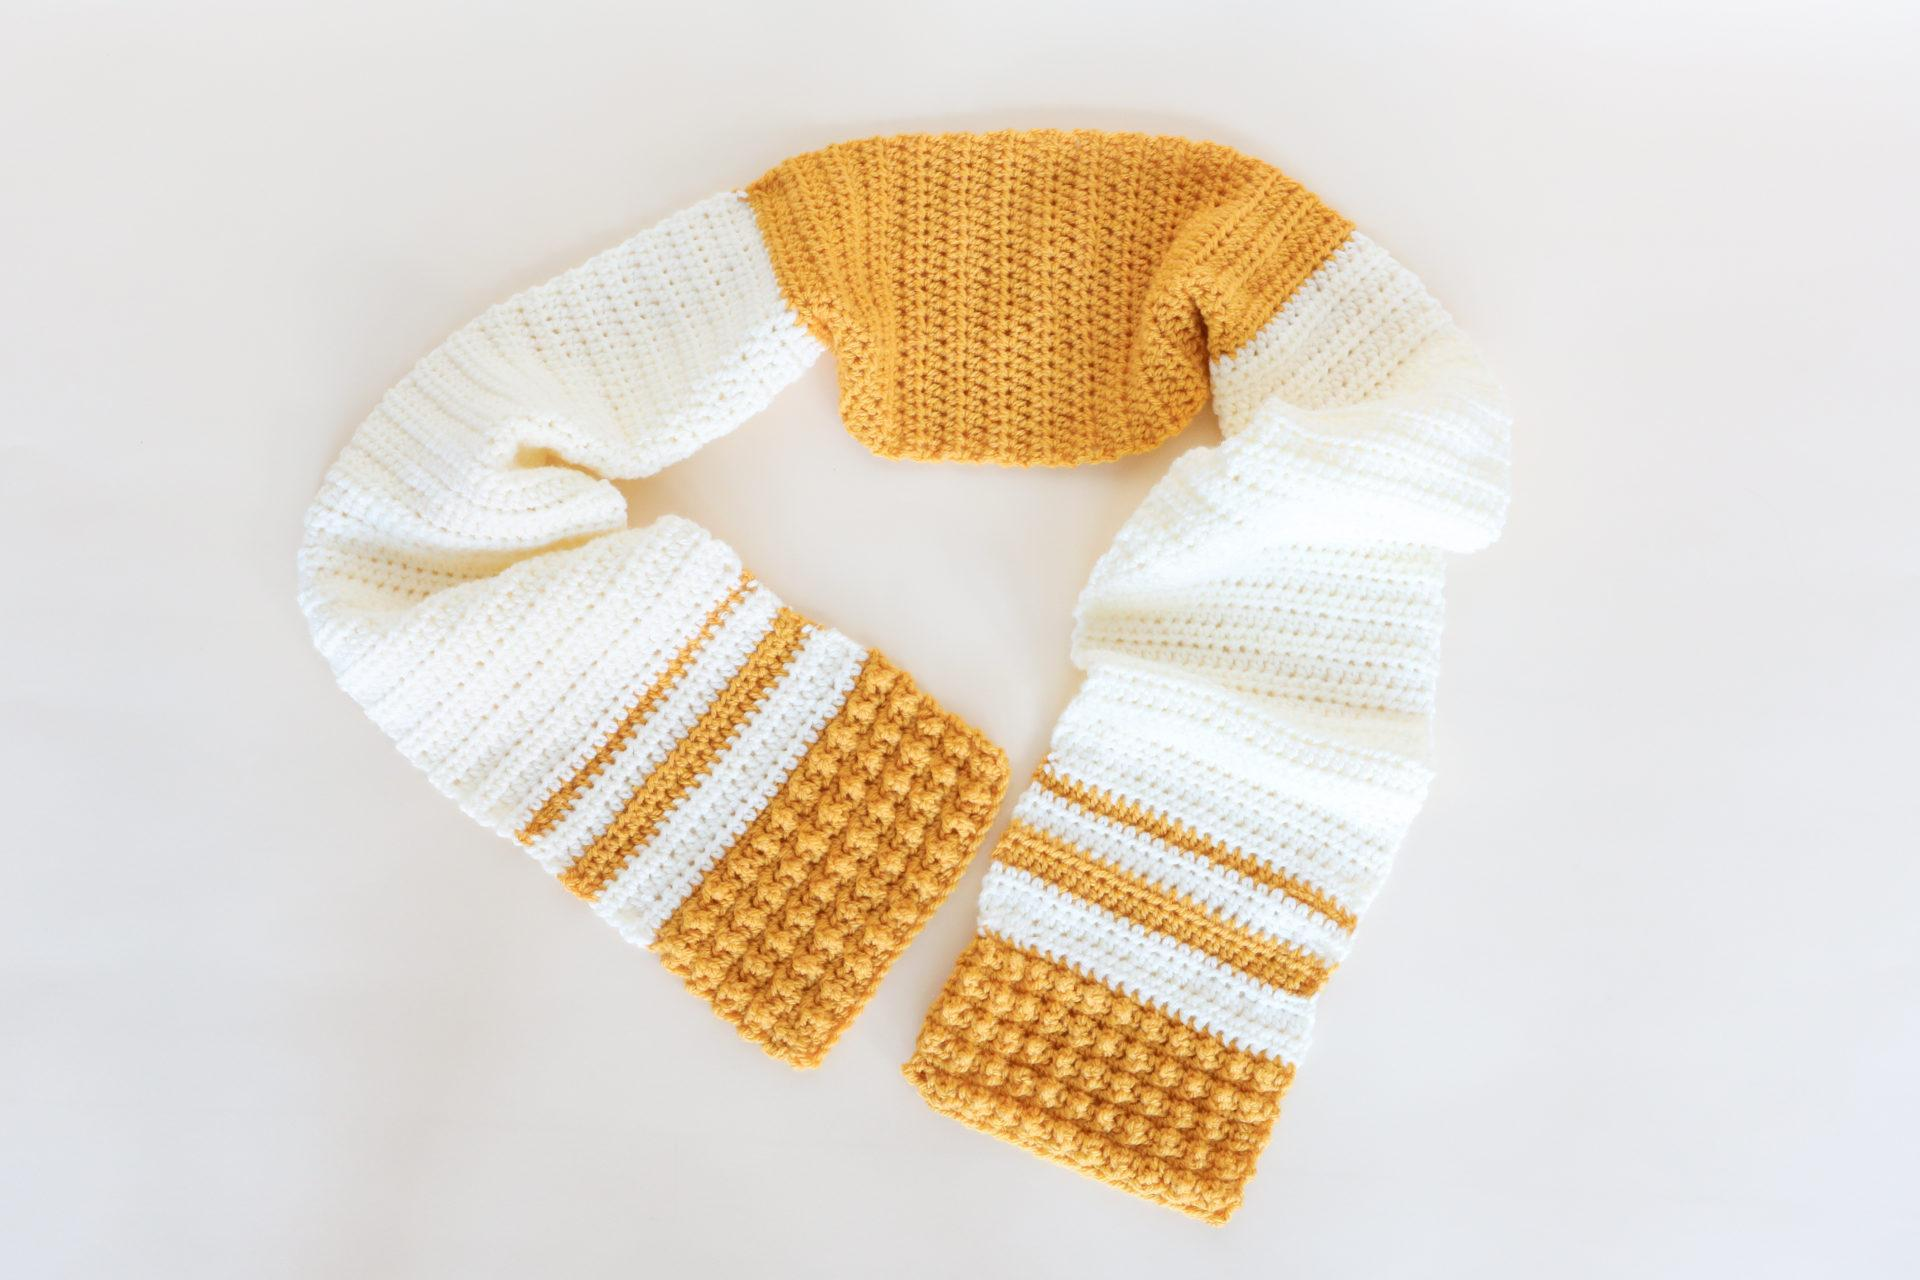 Crochet Honey Mustard Scarf